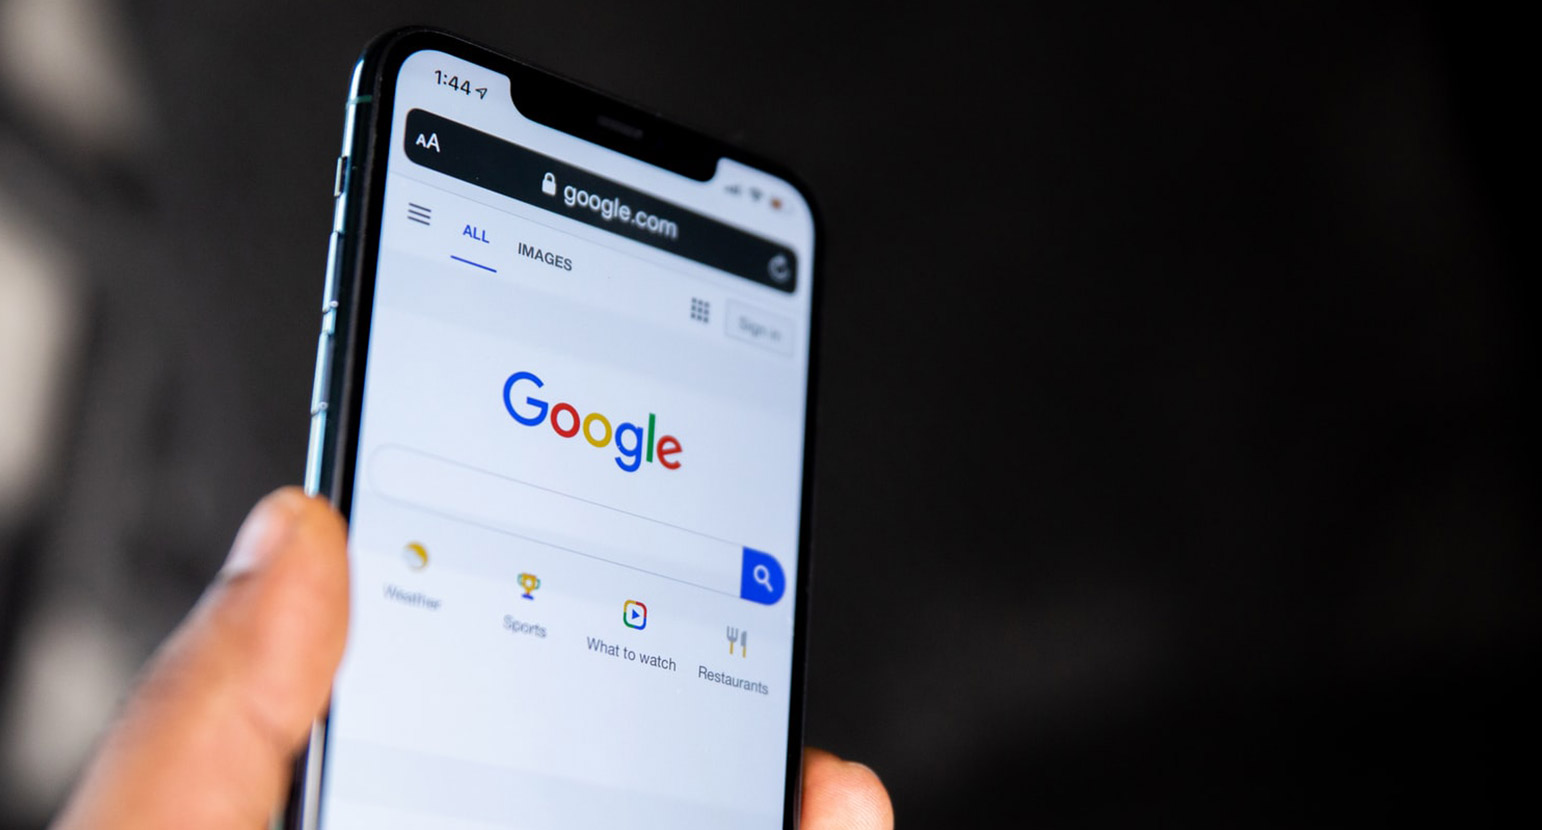 Hand holding up phone with Google Search on the screen.